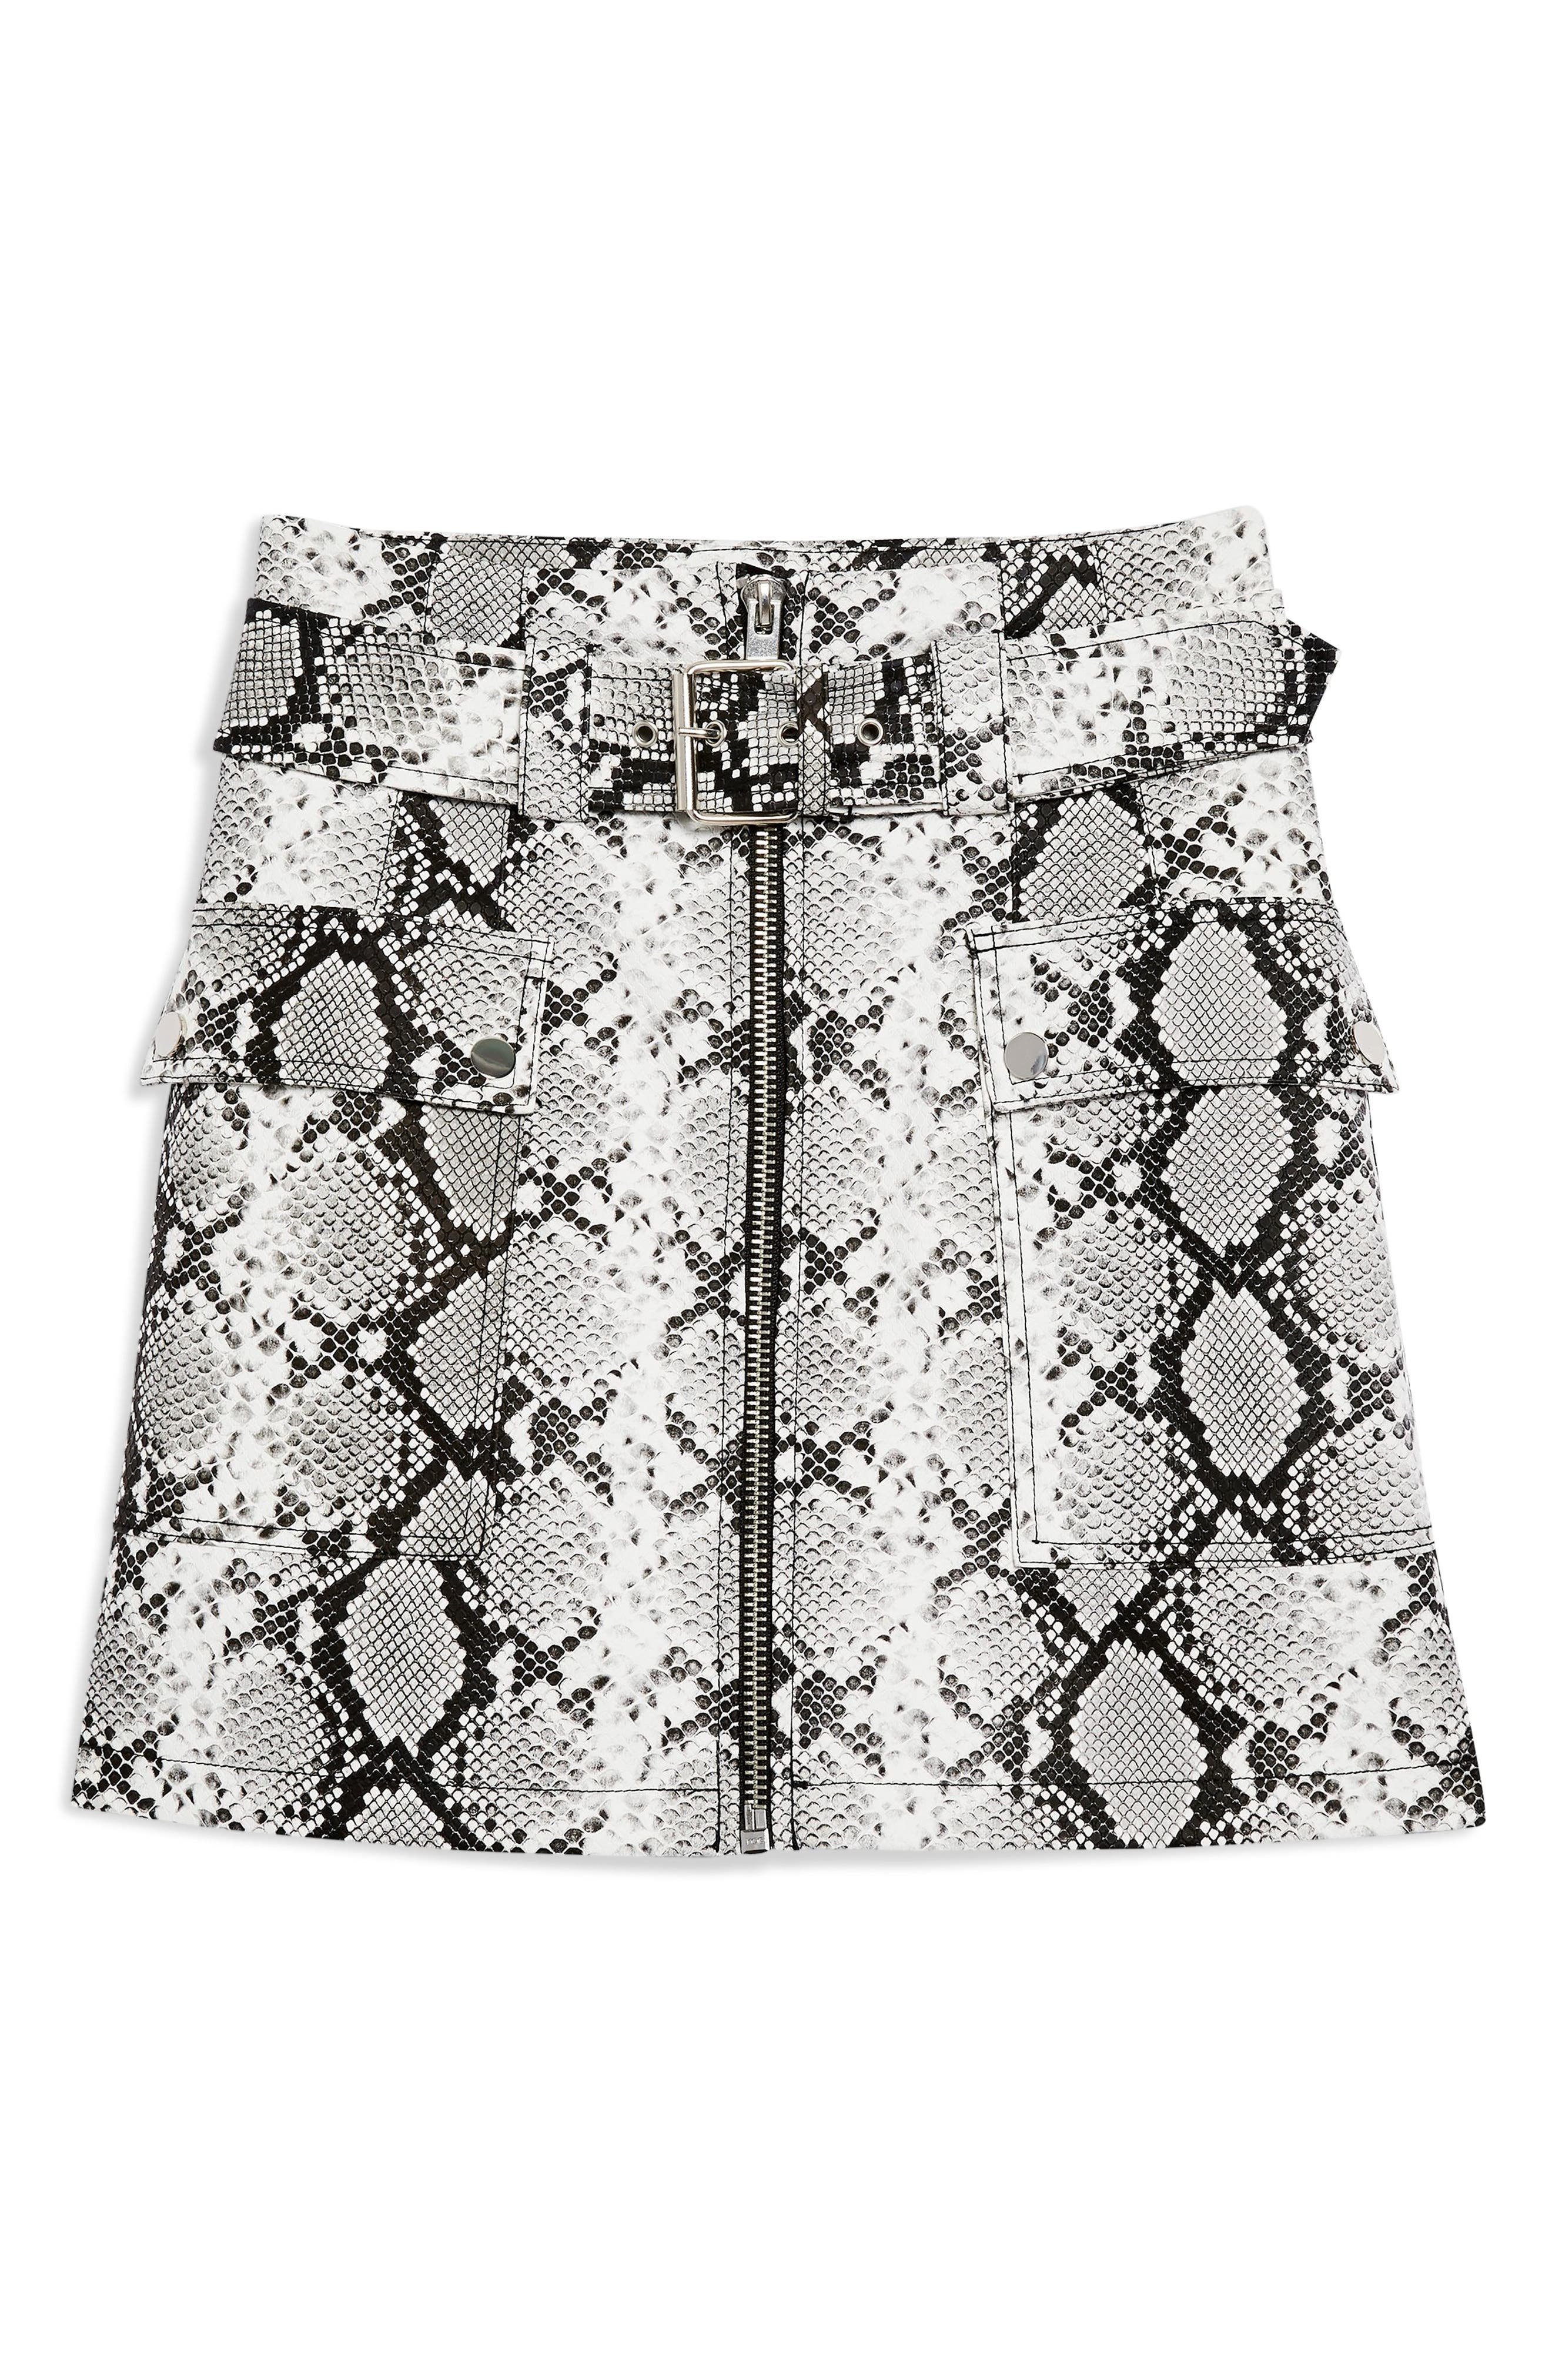 TOPSHOP, Belted Faux Leather Snake Print Miniskirt, Alternate thumbnail 4, color, 100